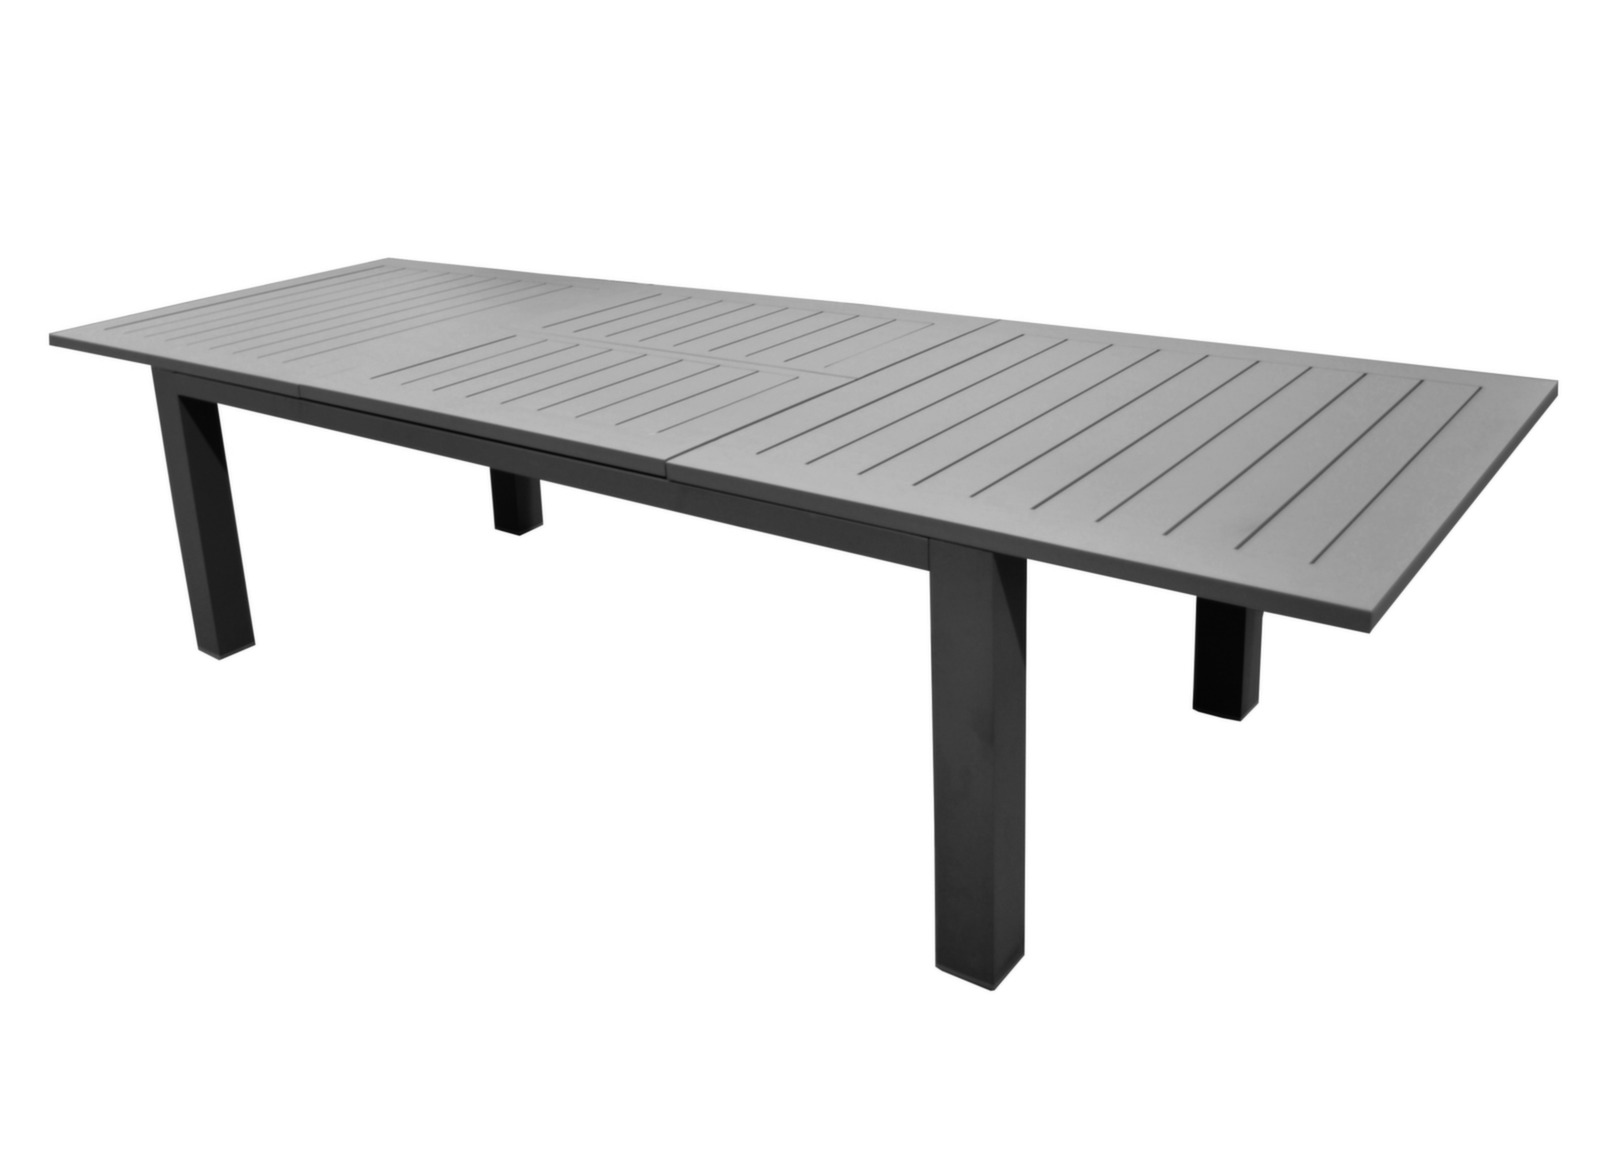 Table Allonge Papillon Housse Protection Pour Table 220x110 Polyester Pvc Gris